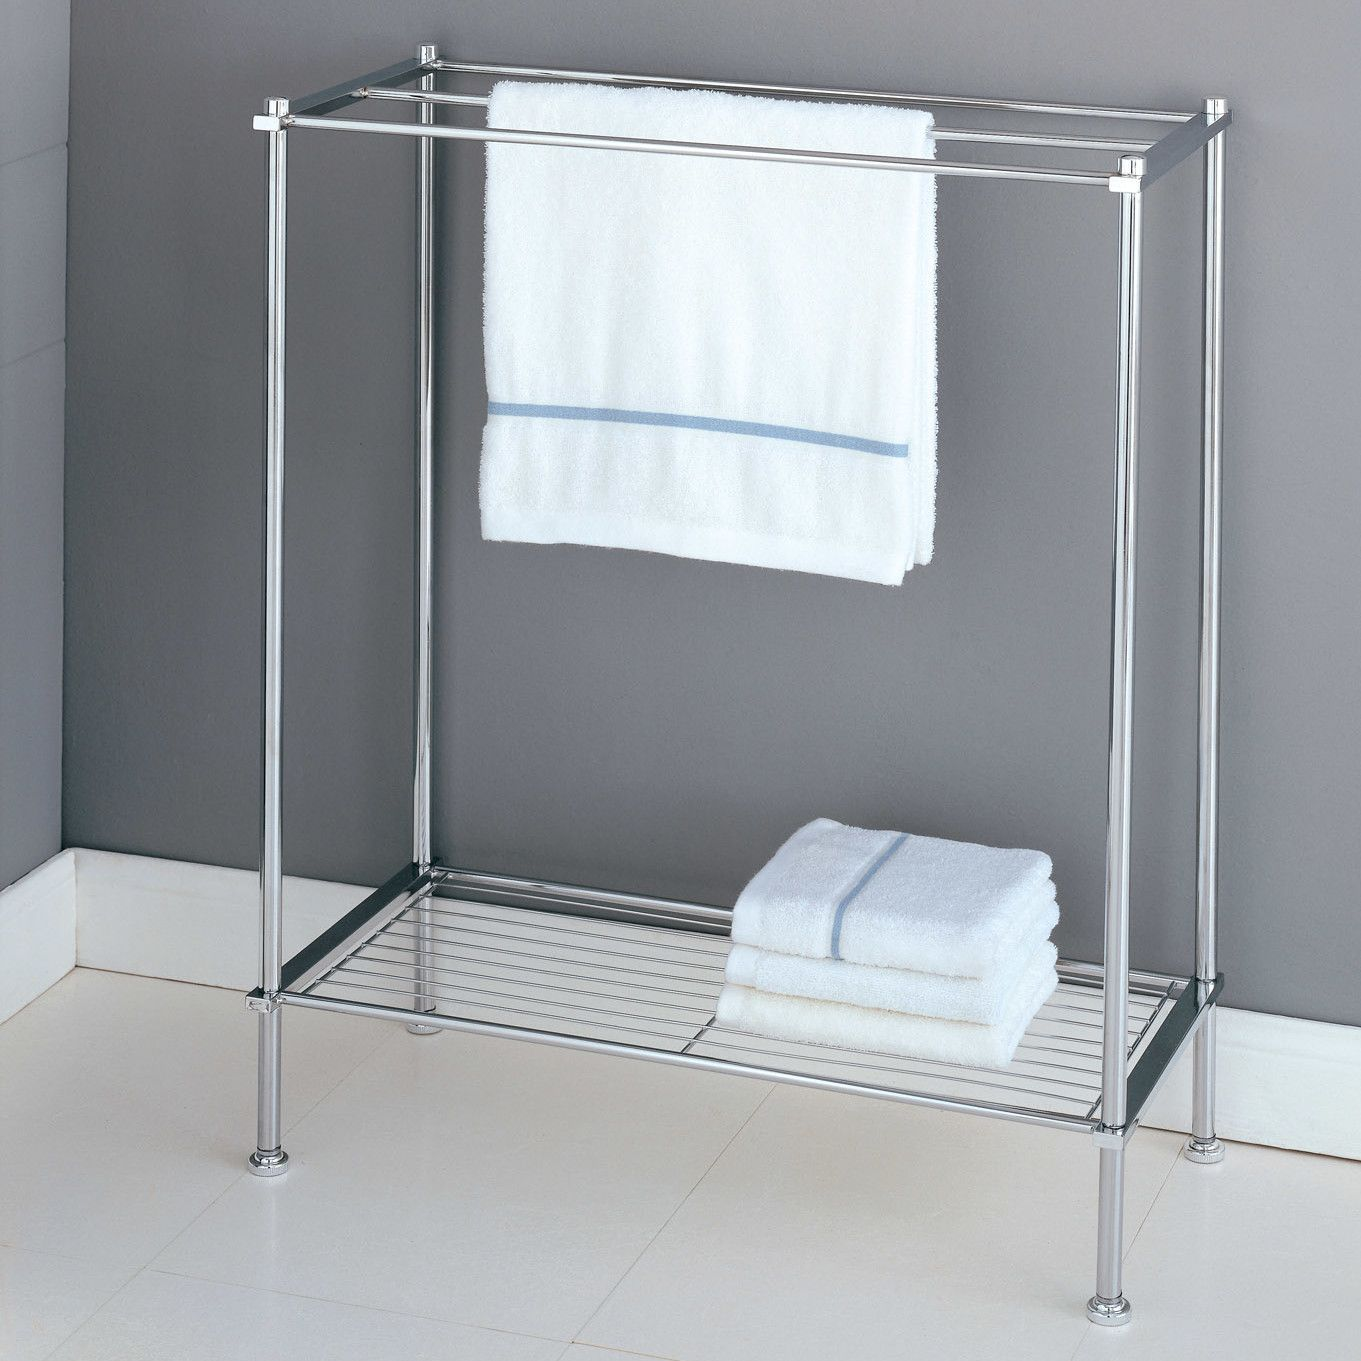 Bon Resemblance Of Stylish Free Standing Towel Racks For Outstanding Bathroom  Ideas